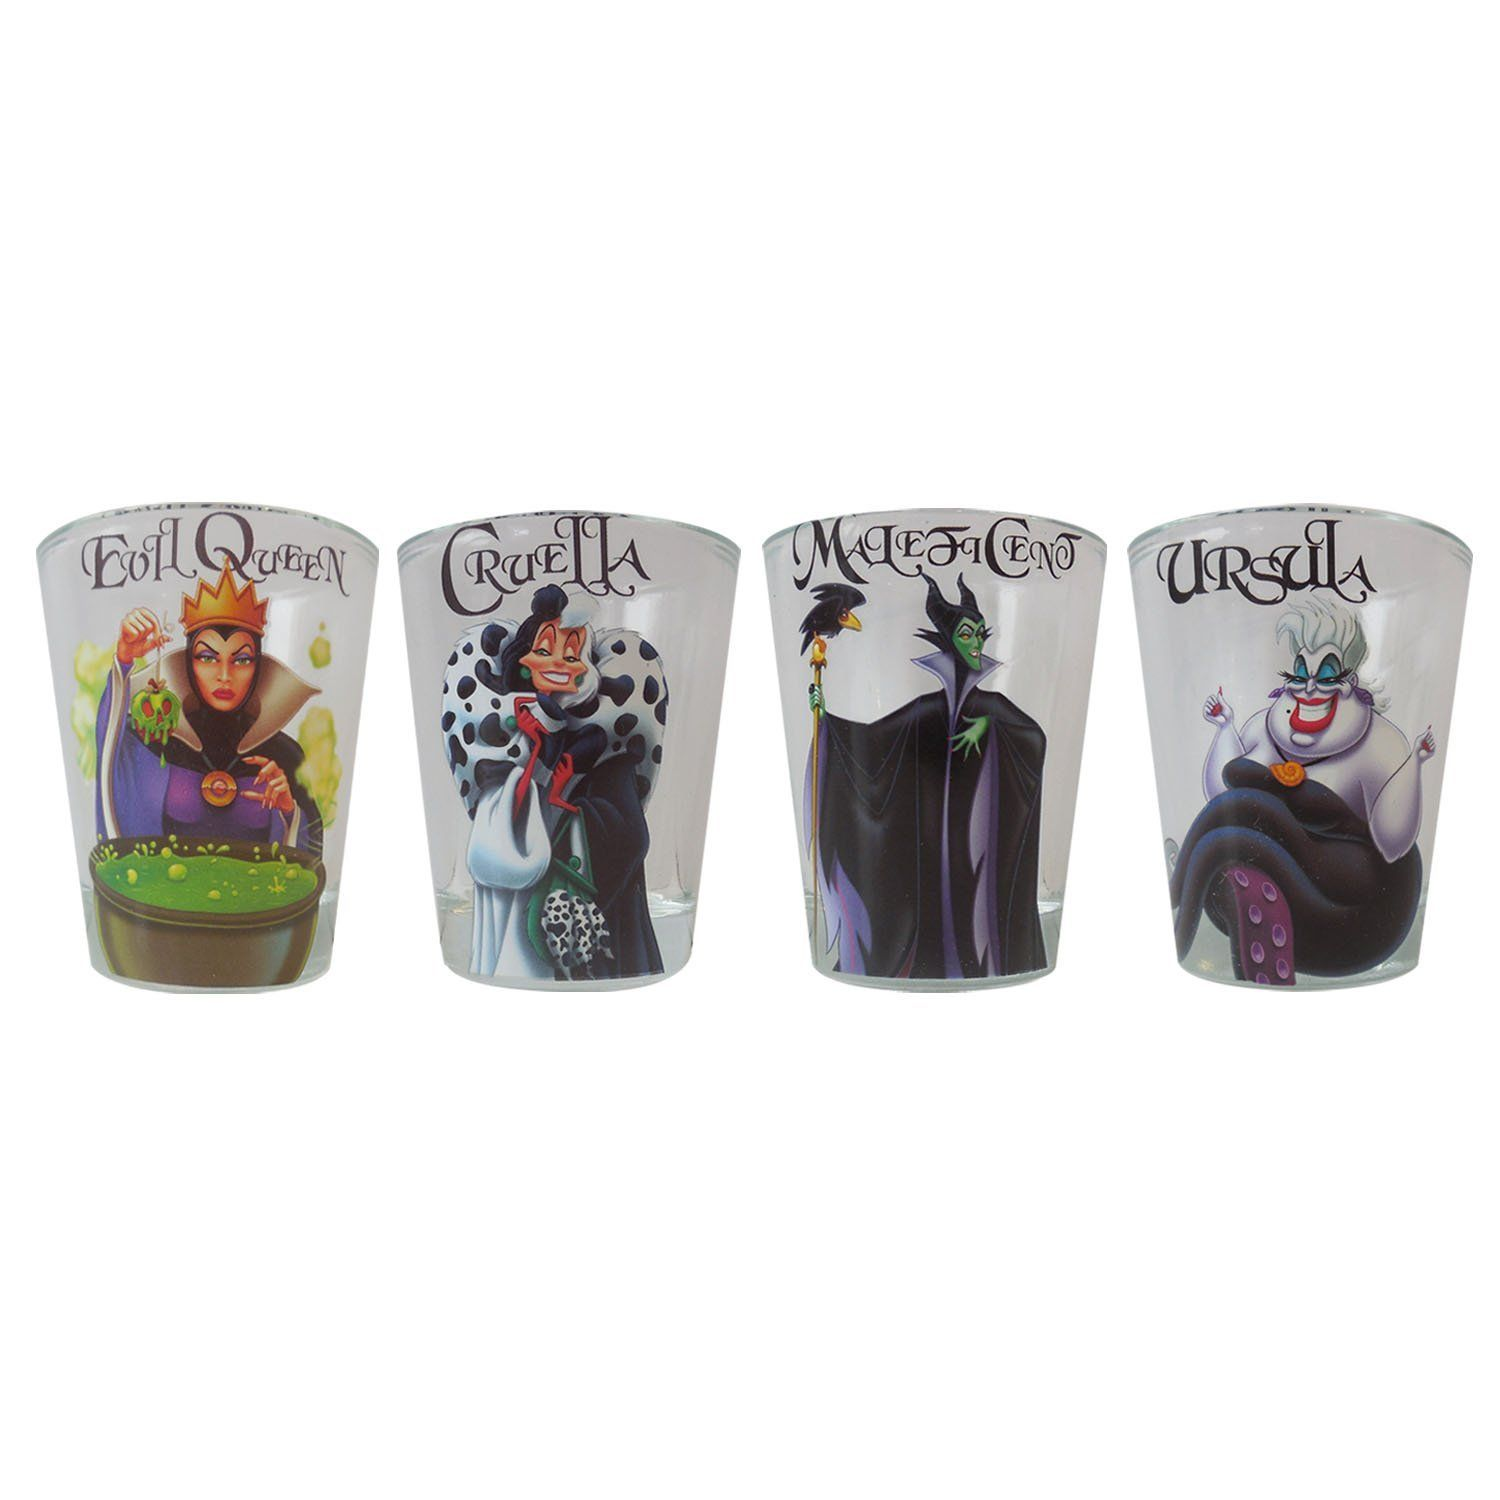 10 Unique Disney Gifts For Adults - Best Gift Ideas for Disney ...